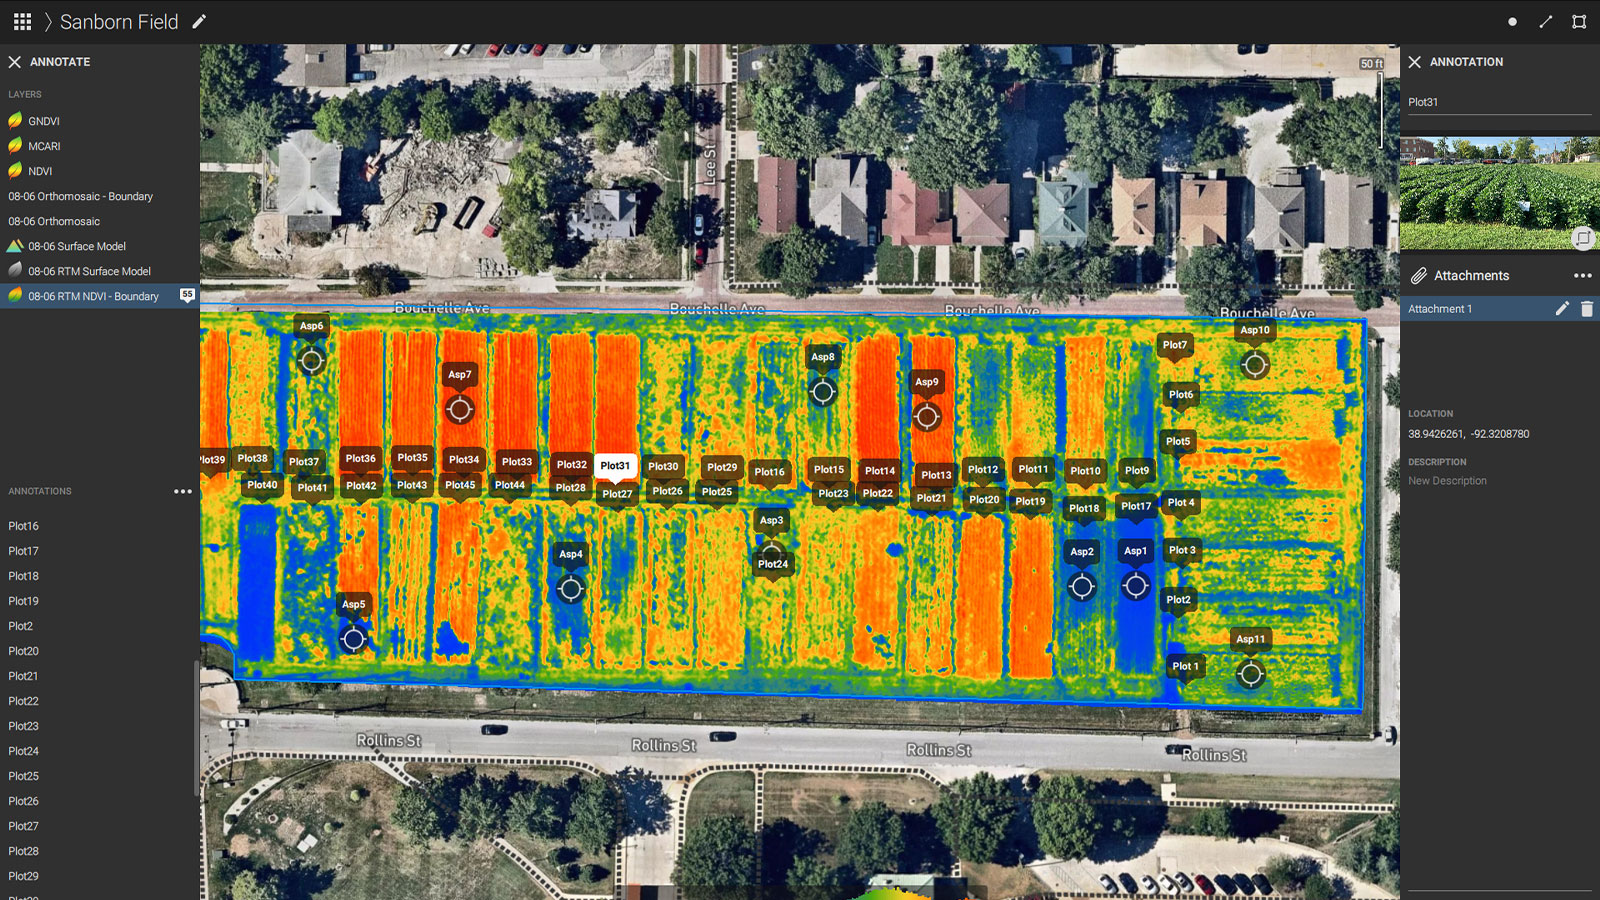 Ndvi map of the Sanborn fields